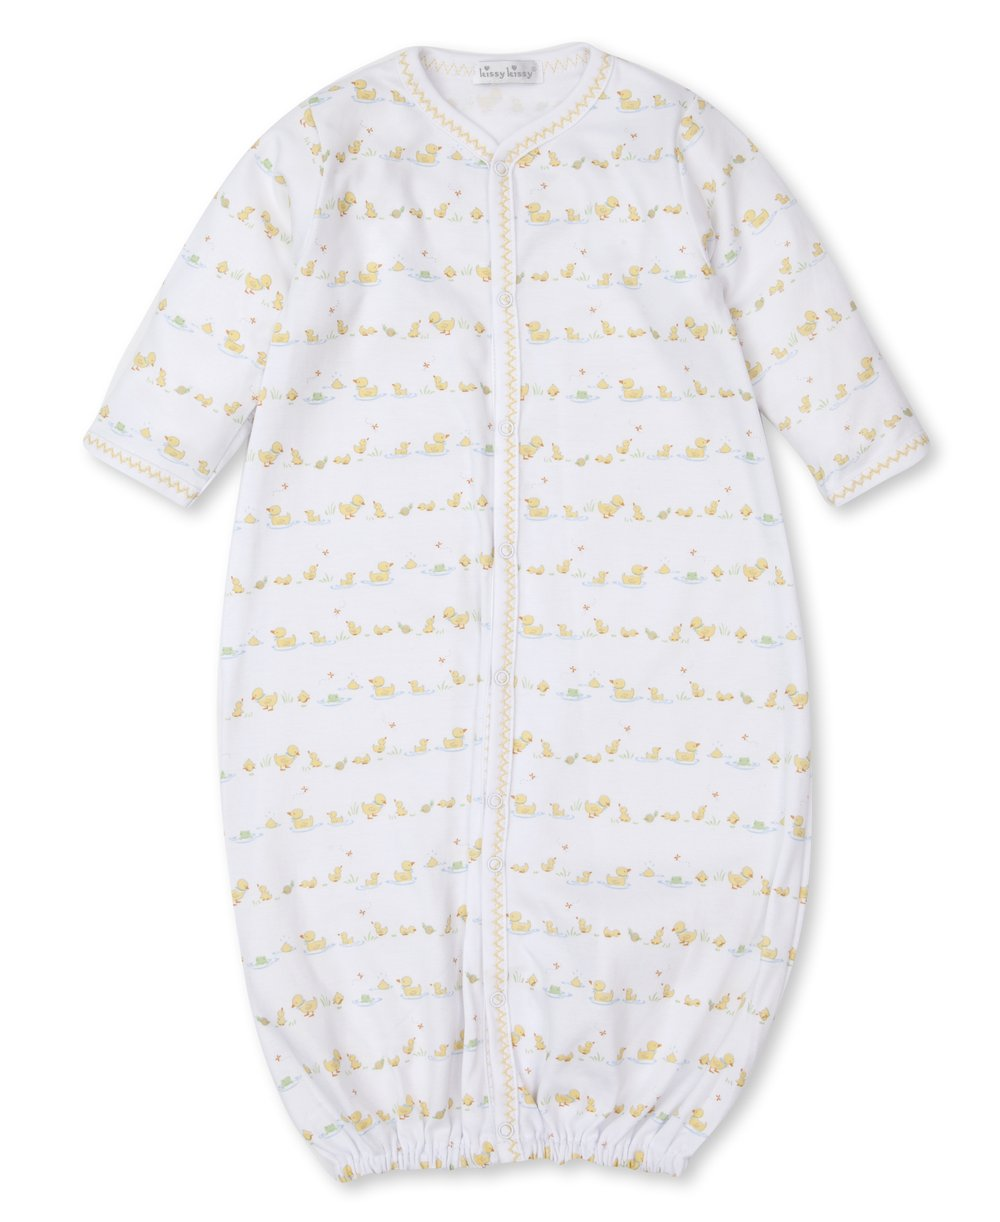 Kissy Kissy Dilly Dally Duckies Converter Gown